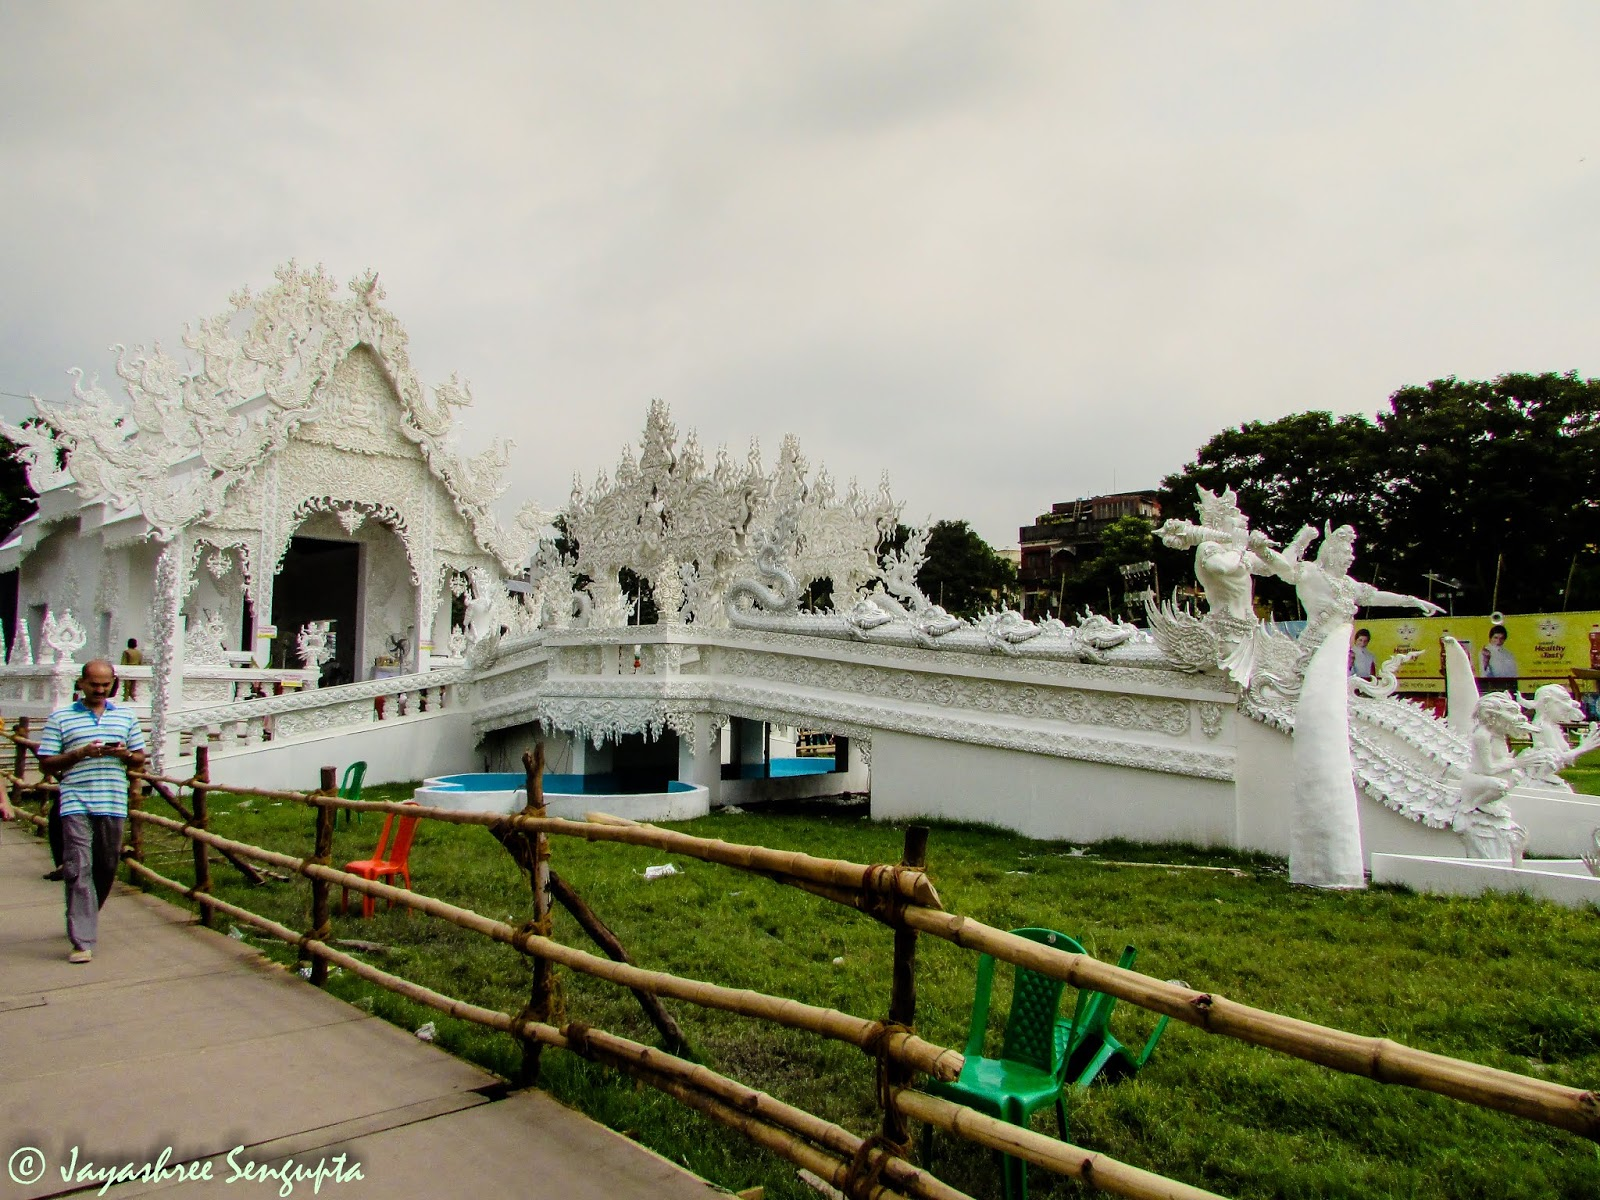 Deshopriyo Park's theme based on the White Temple of Thailand